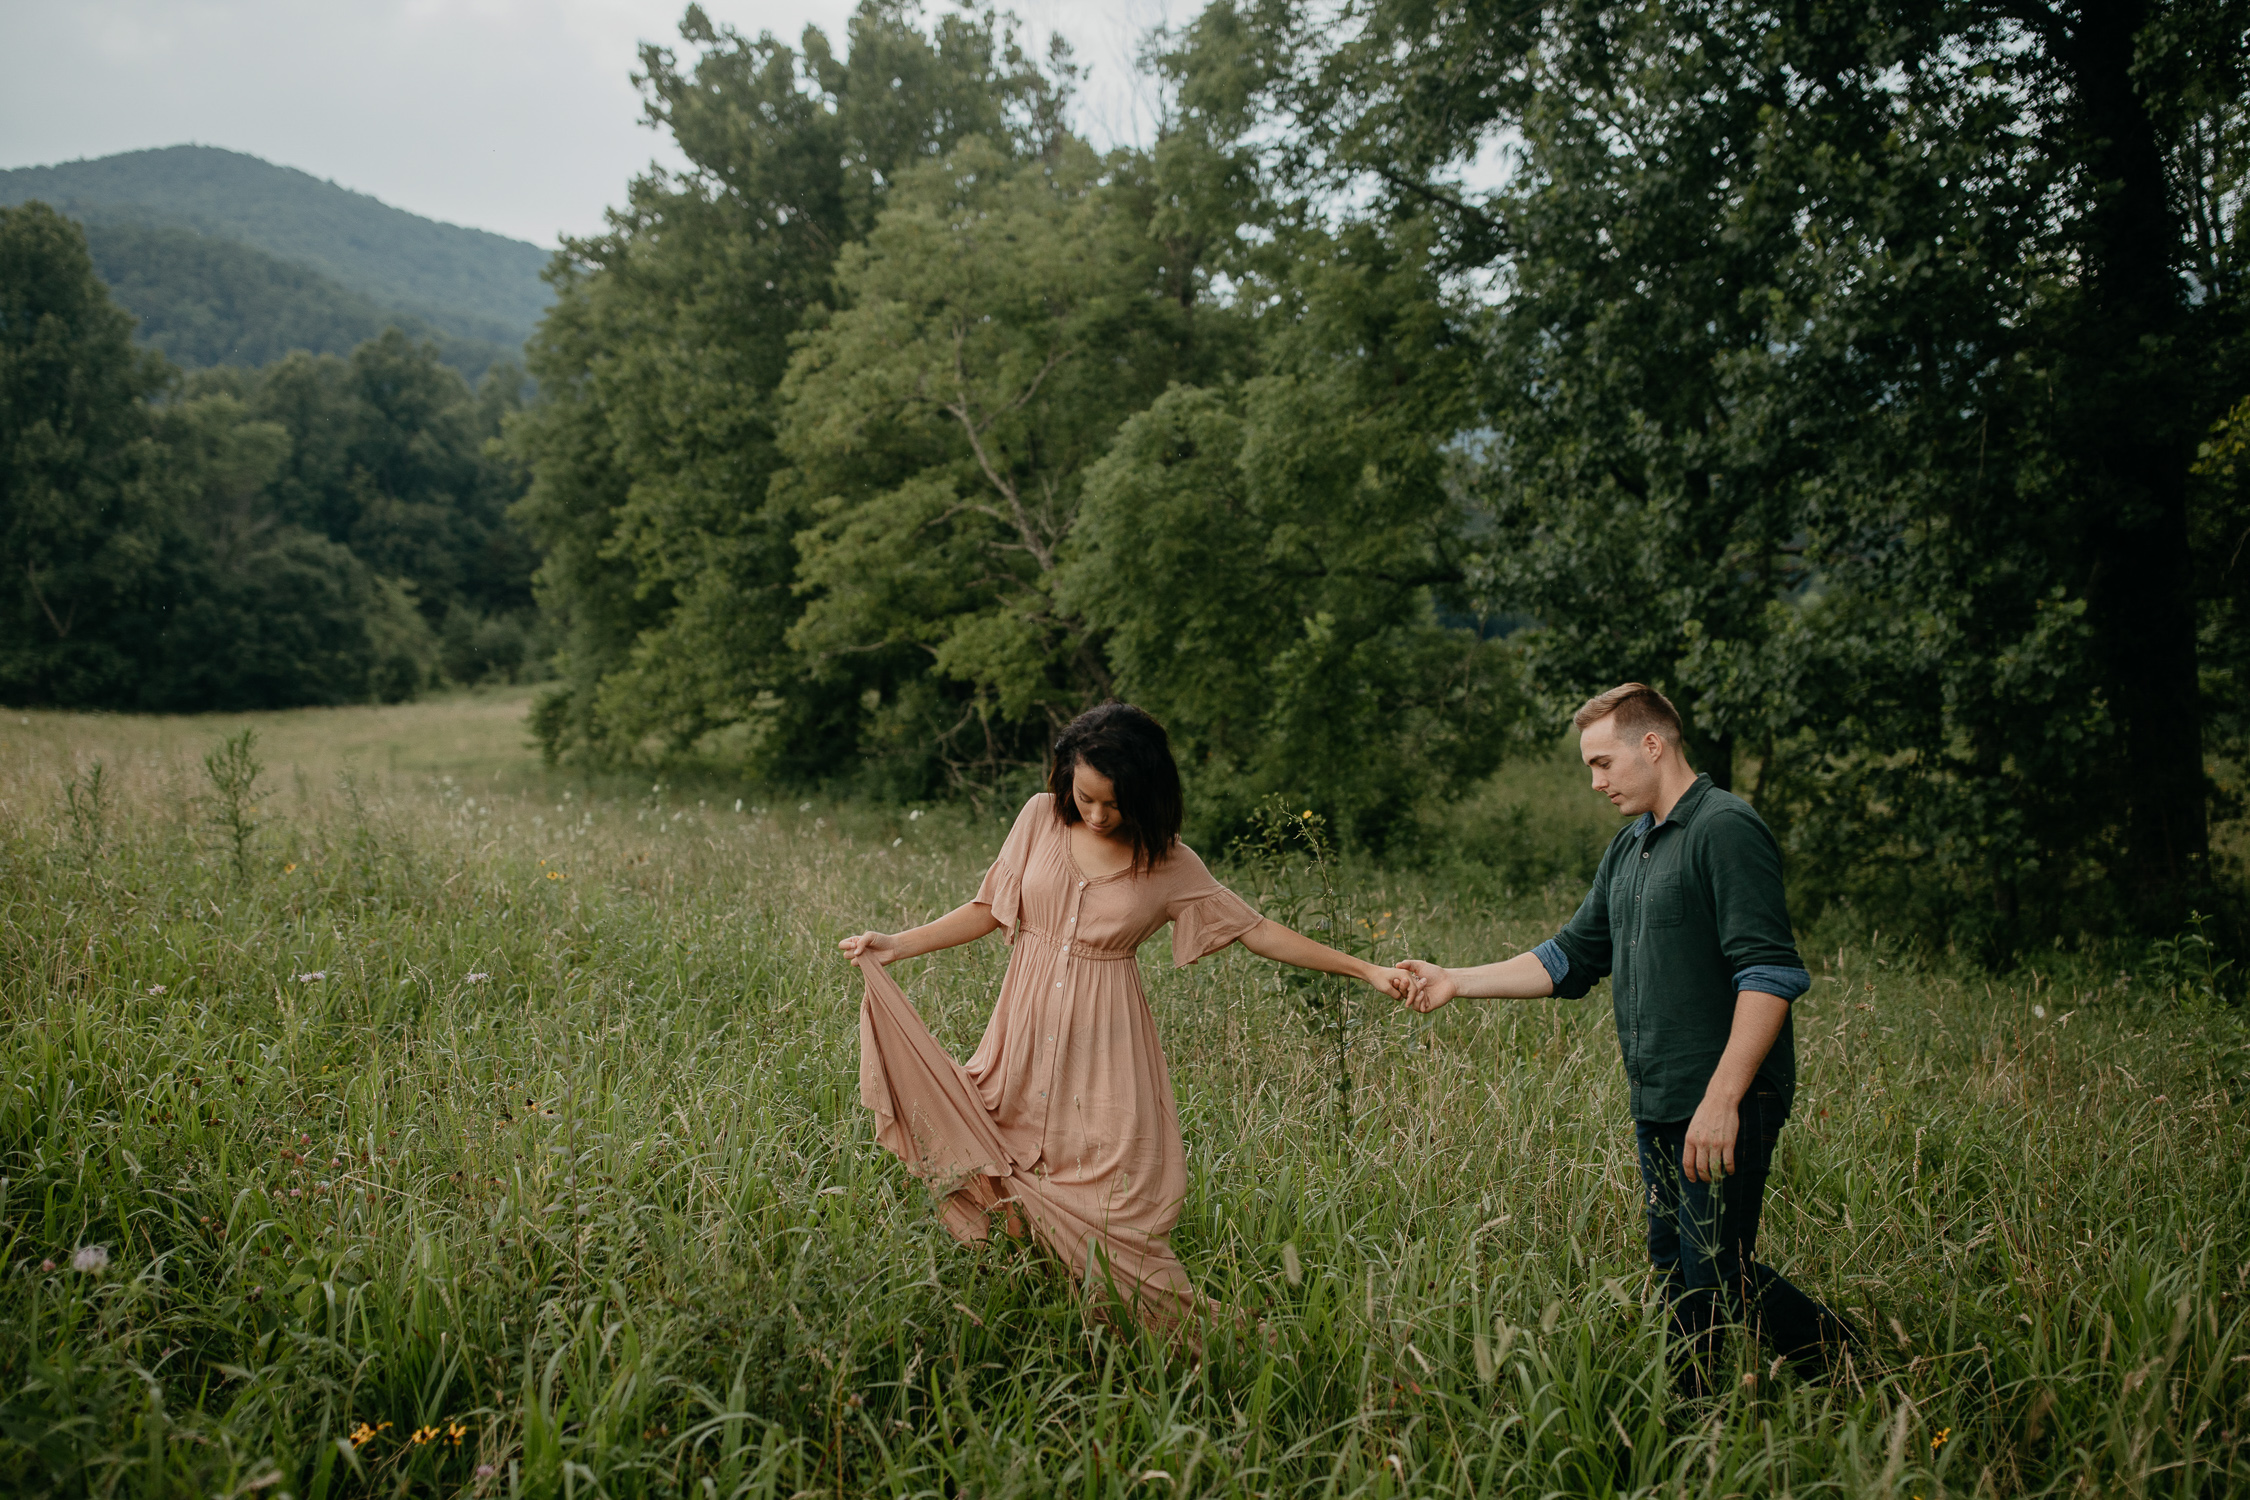 ariannamtorres and isaac engagement session at cades cove smoky mountains elopement-64.jpg